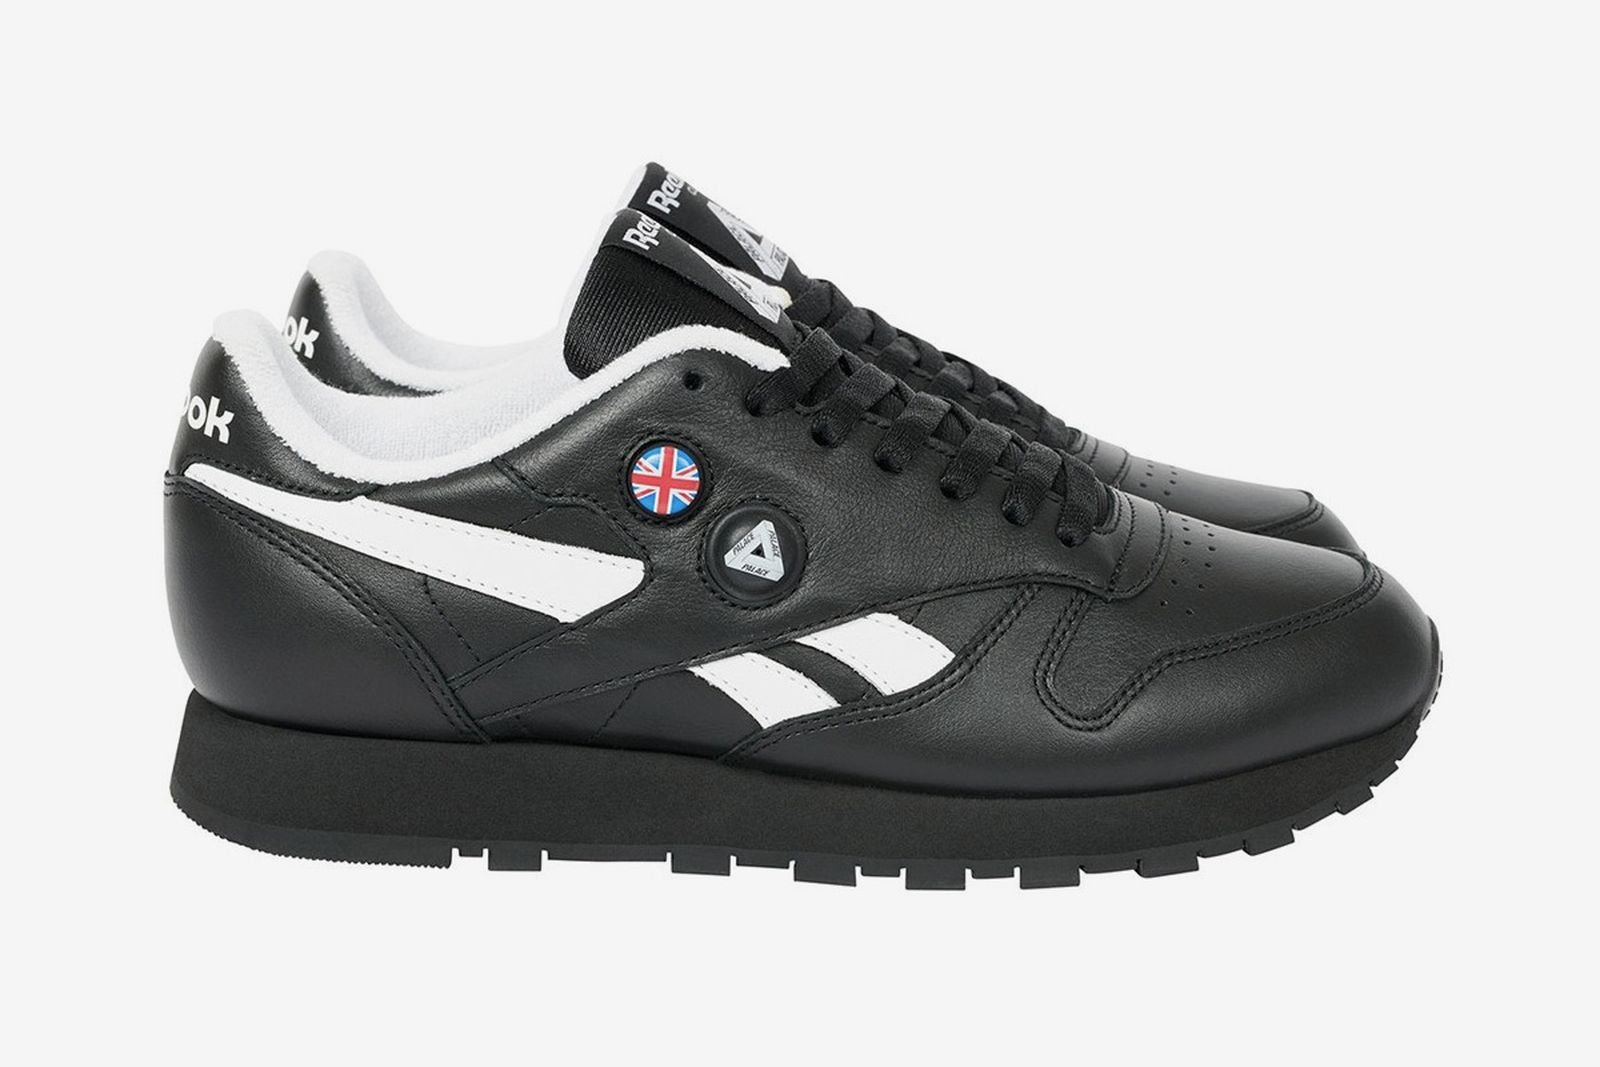 palace-reebok-classic-leather-pump-release-date-price-04